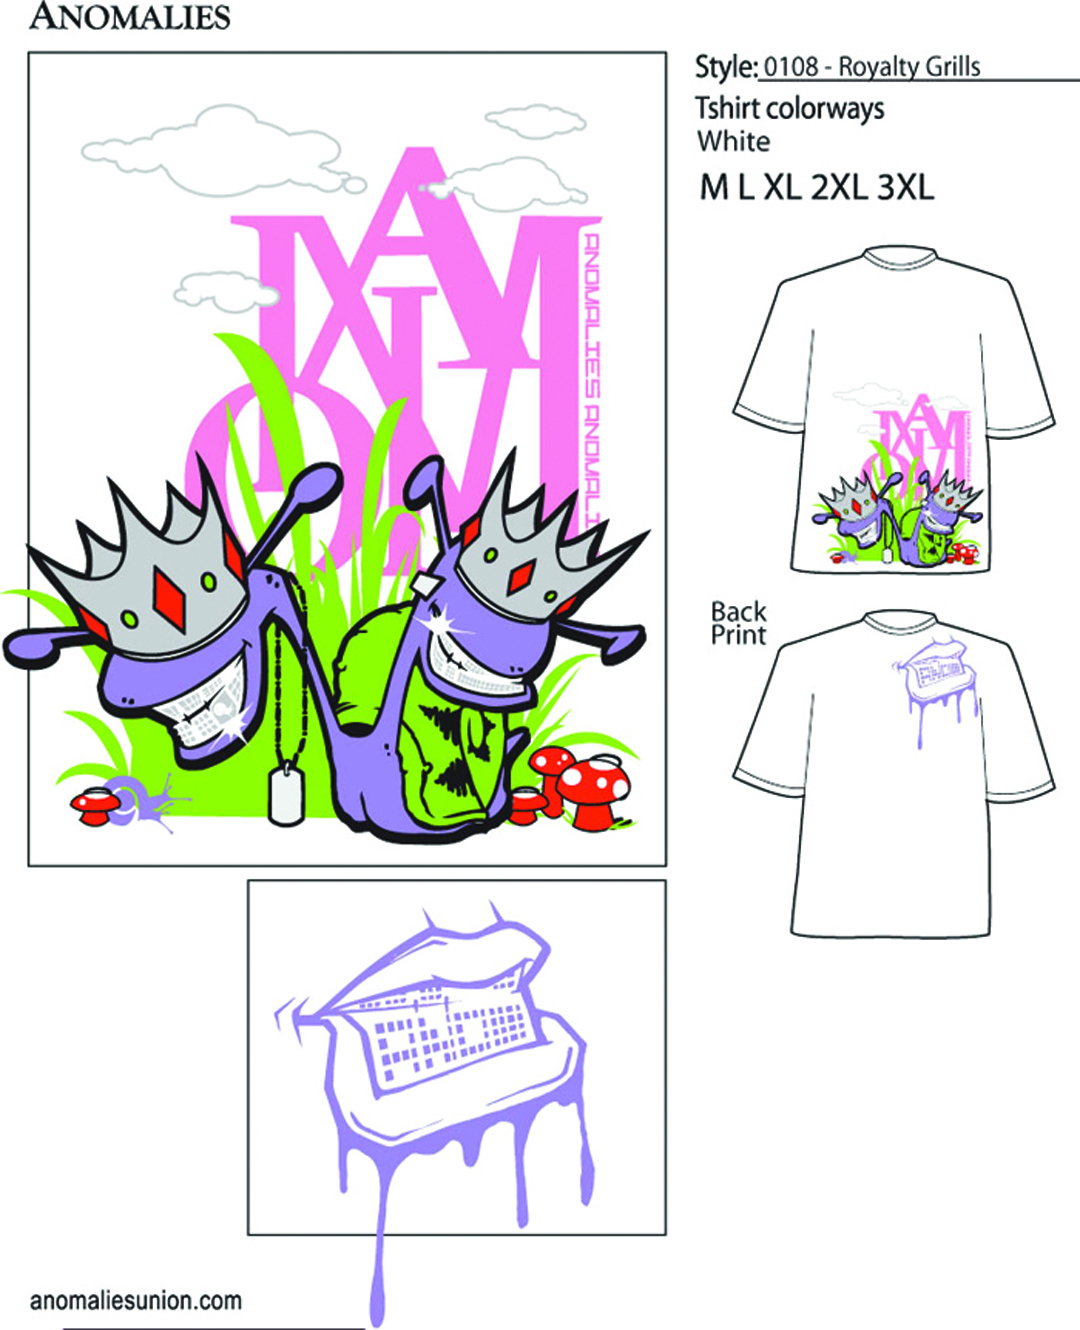 Anom Snails Design by East 3